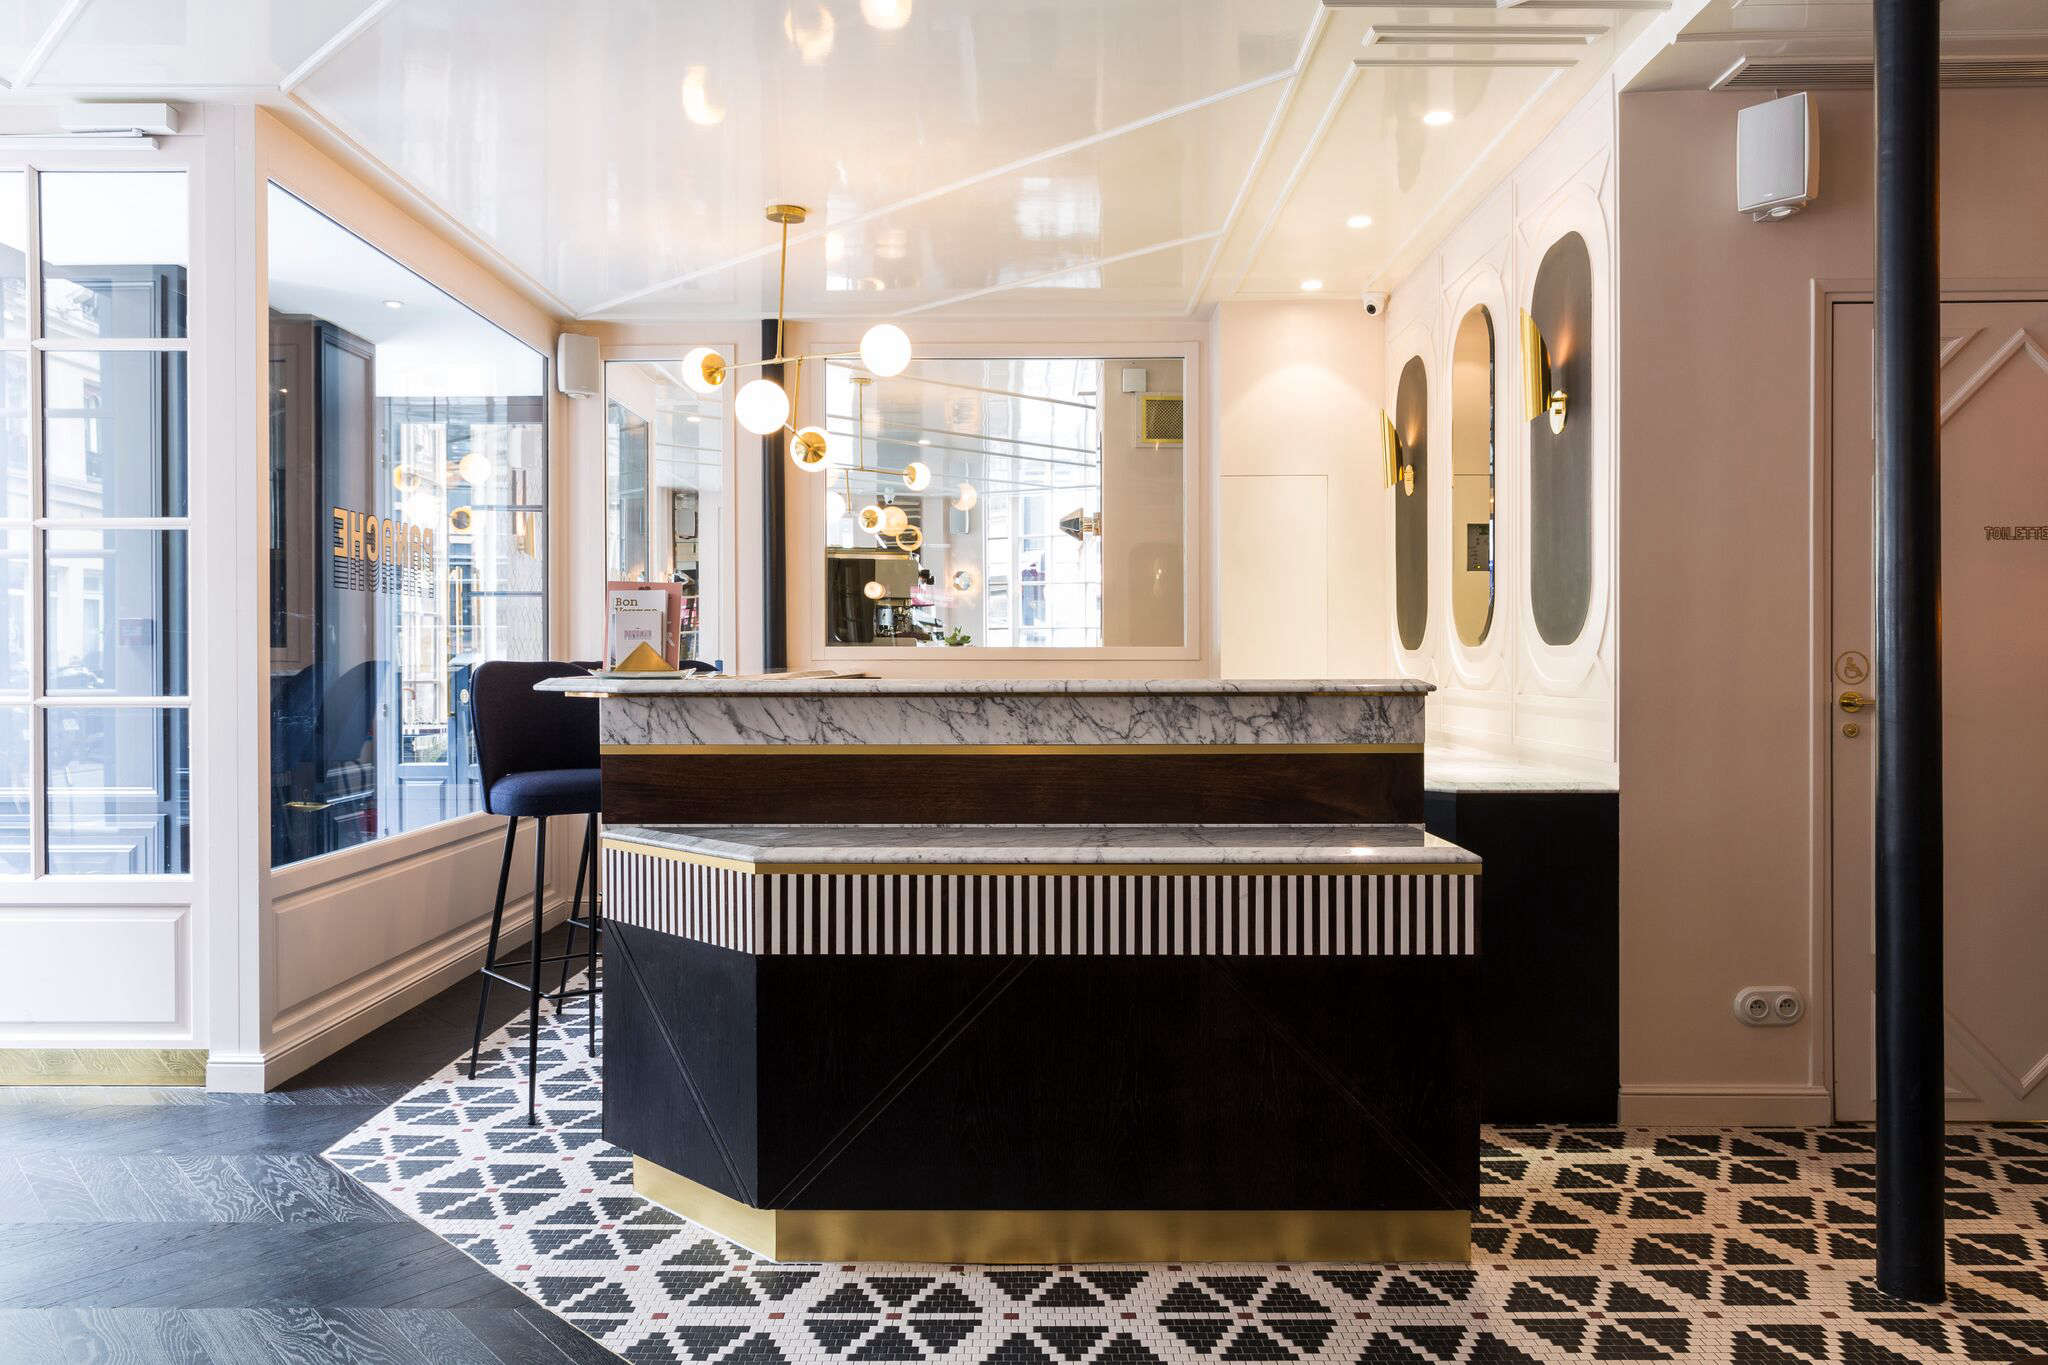 hotel panache - an affordable design hotel in paris